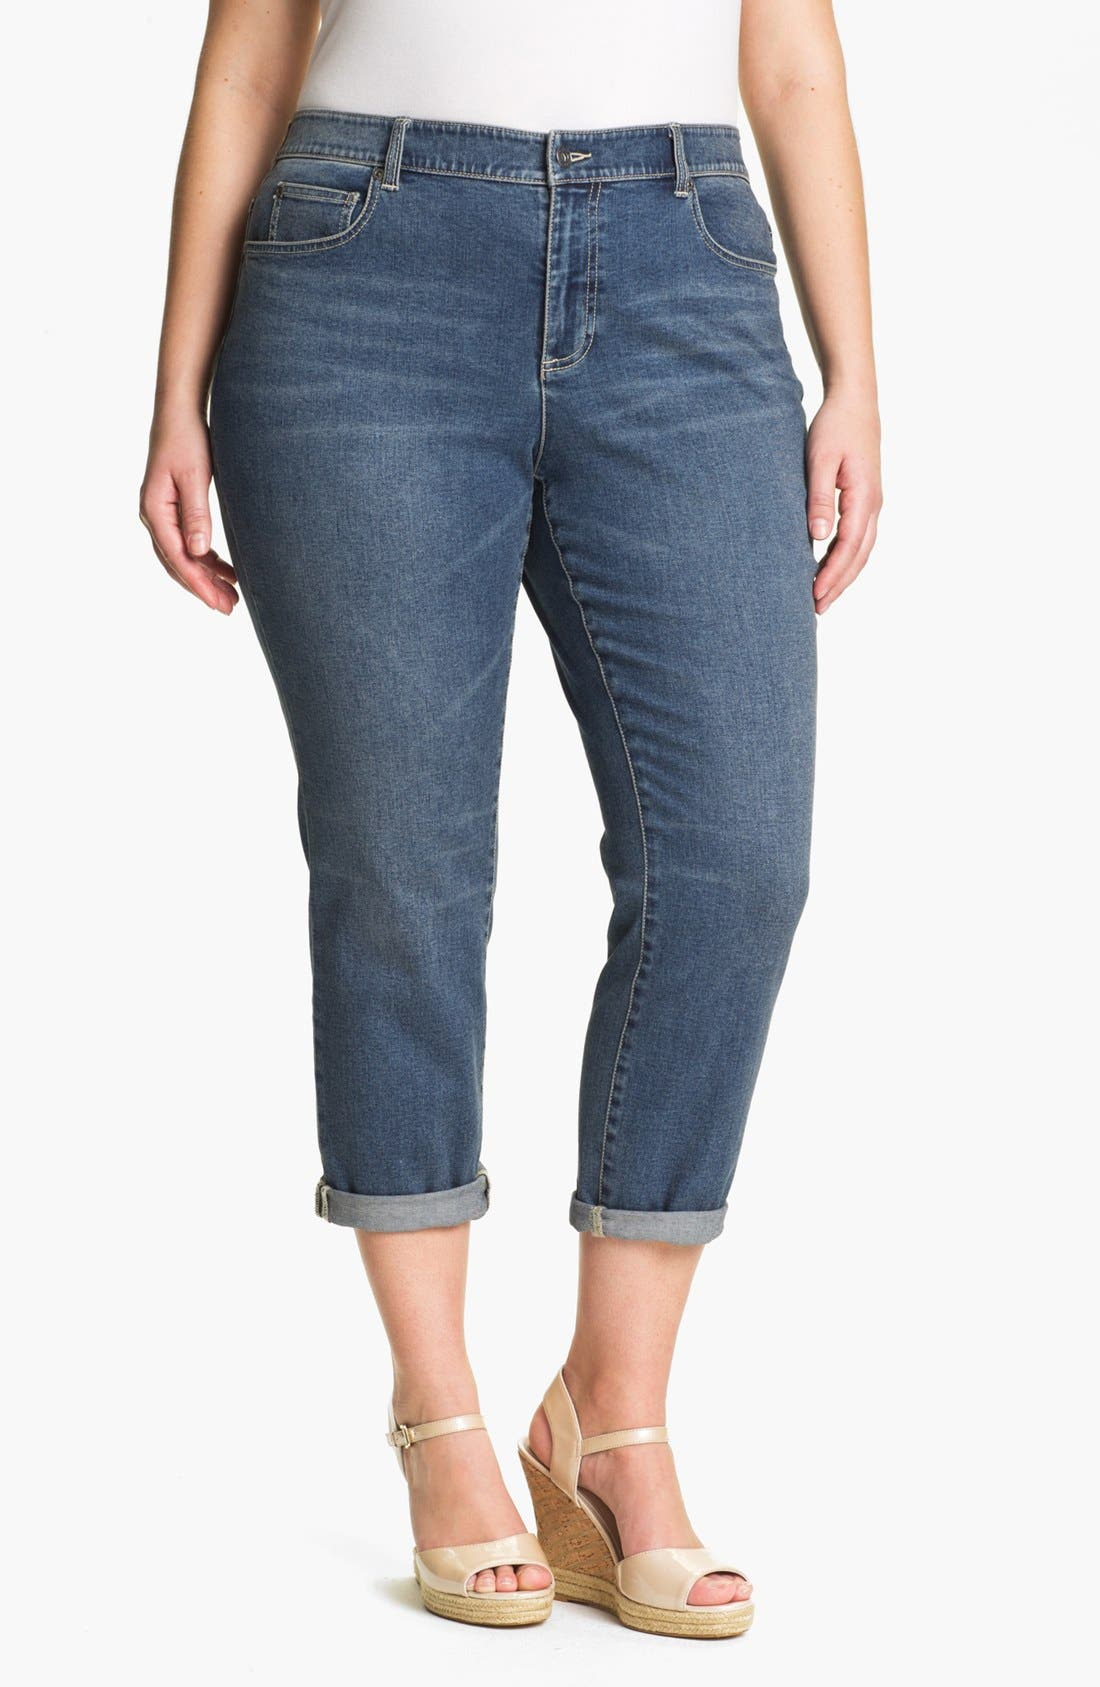 Main Image - Two by Vince Camuto Cuffed Boyfriend Jeans (Plus Size)